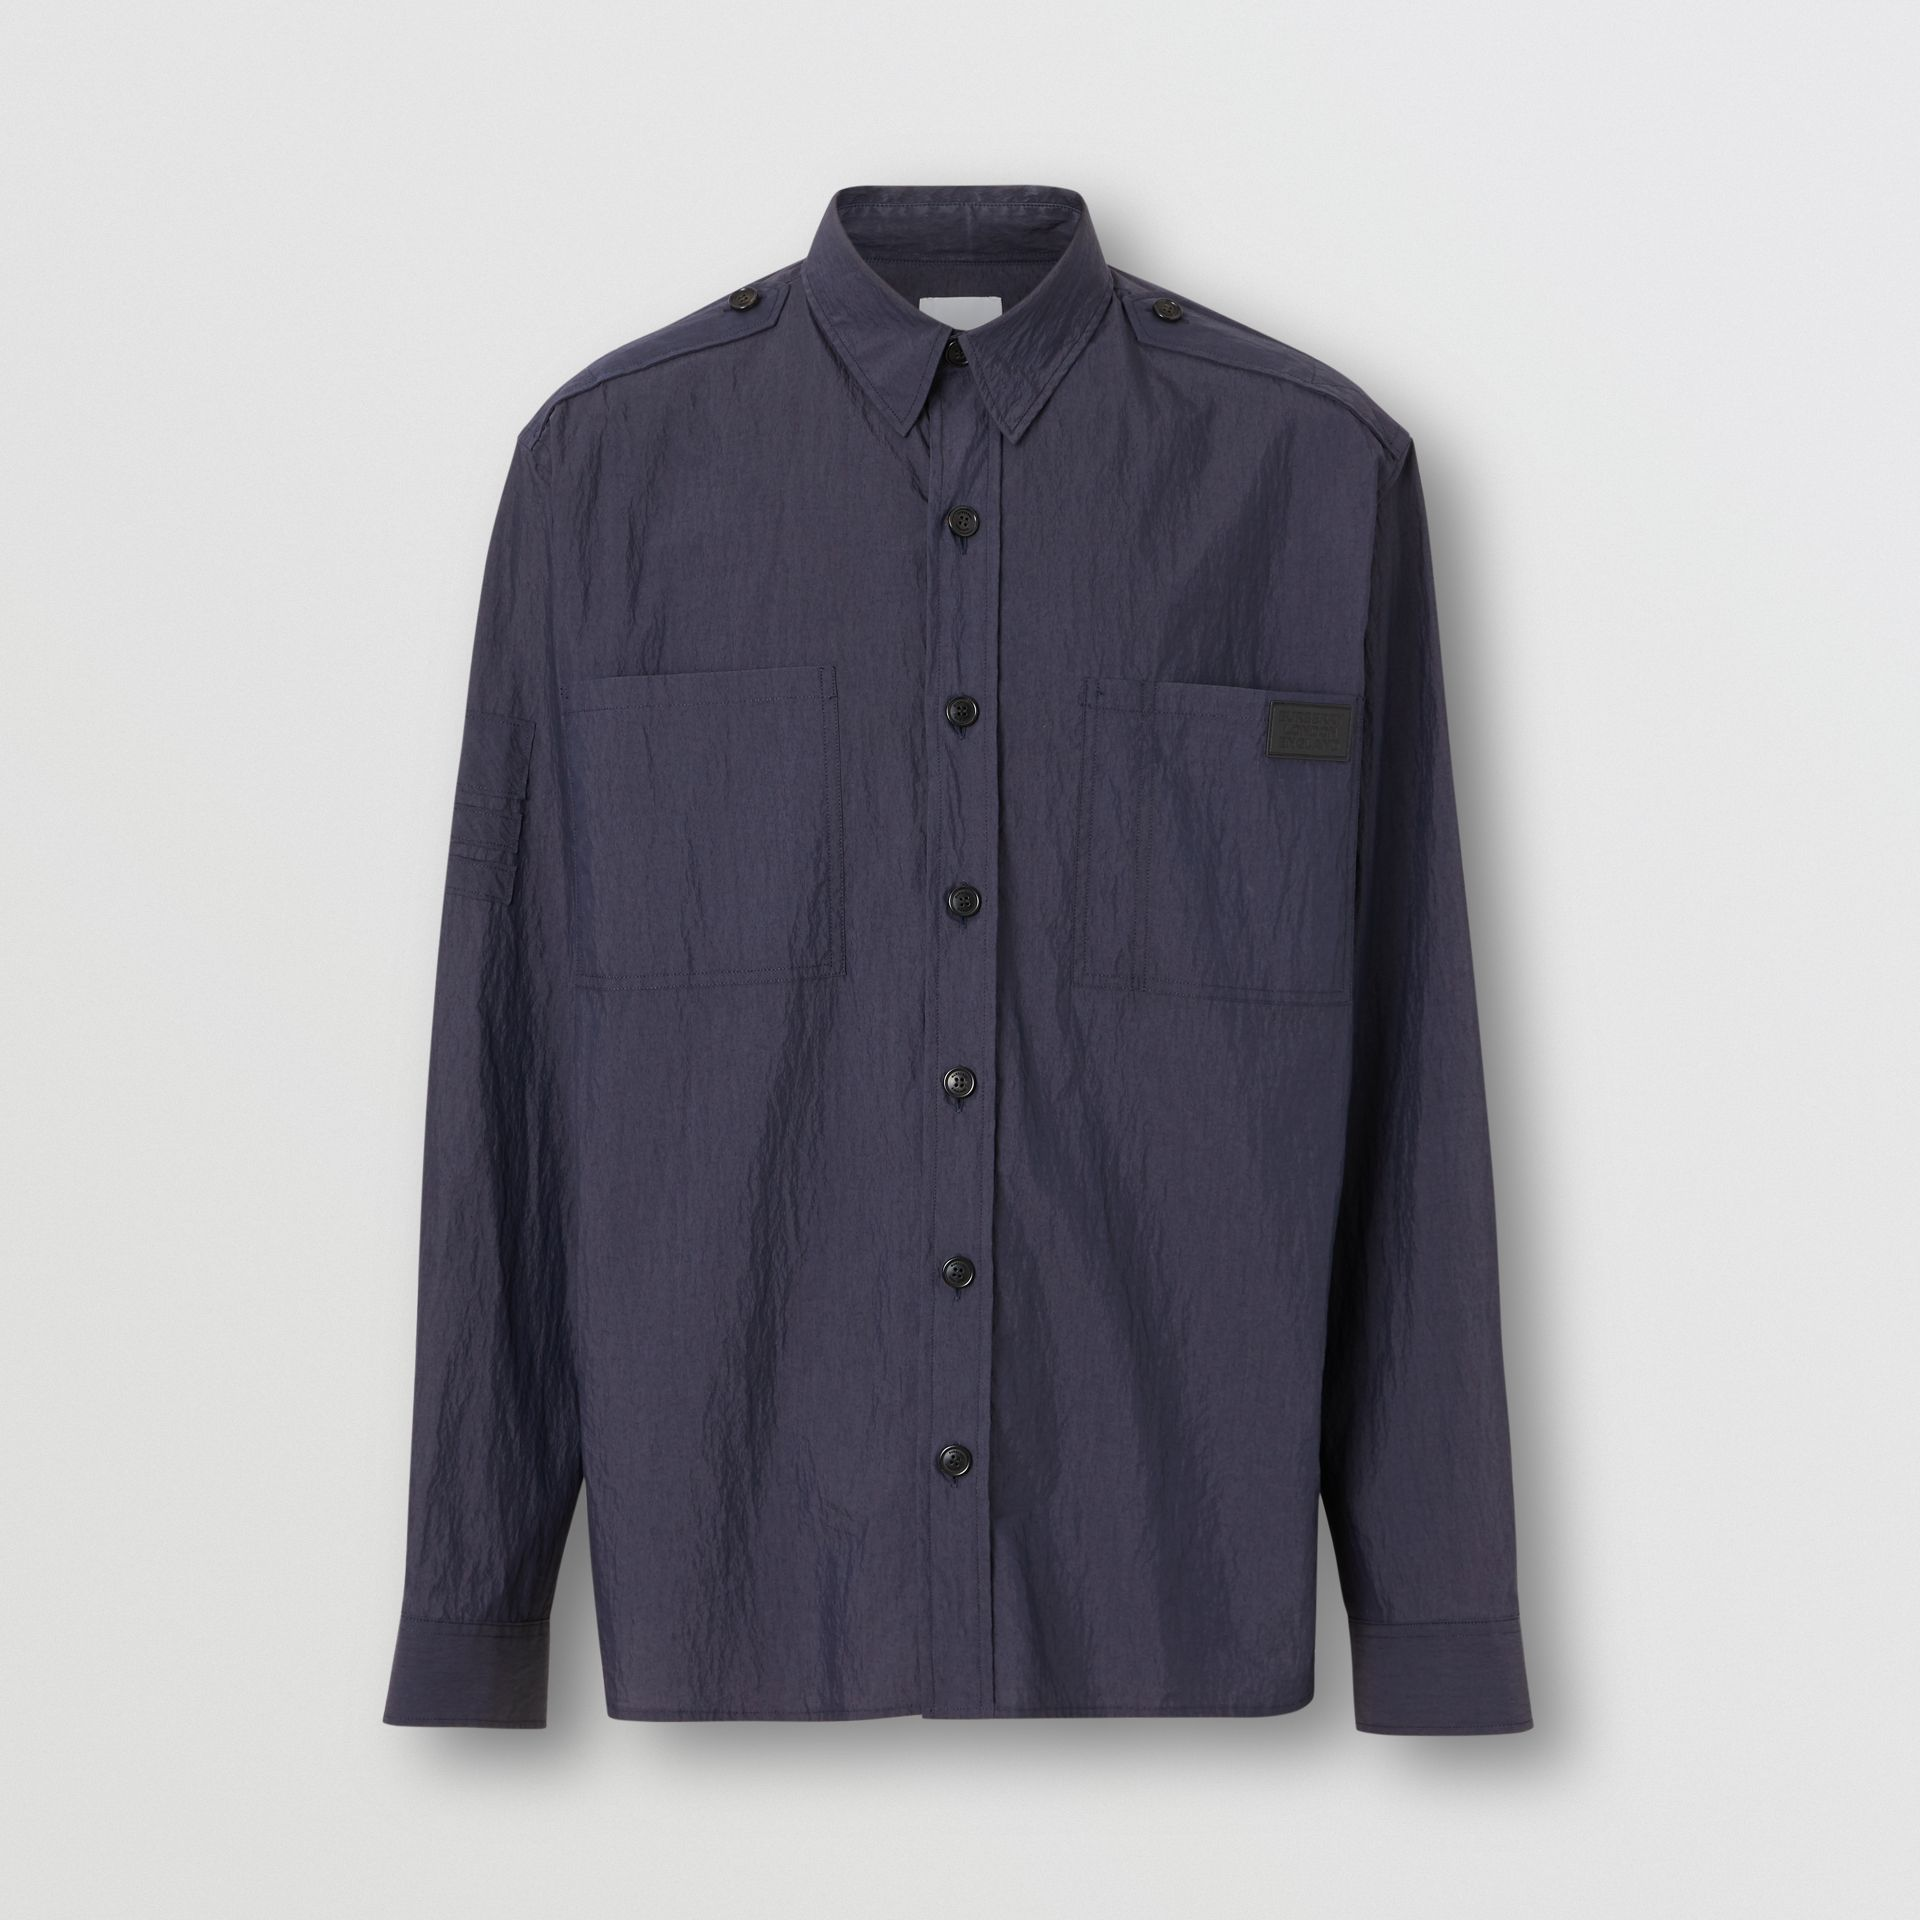 Crinkled Cotton Blend Shirt in Navy - Men | Burberry - gallery image 3